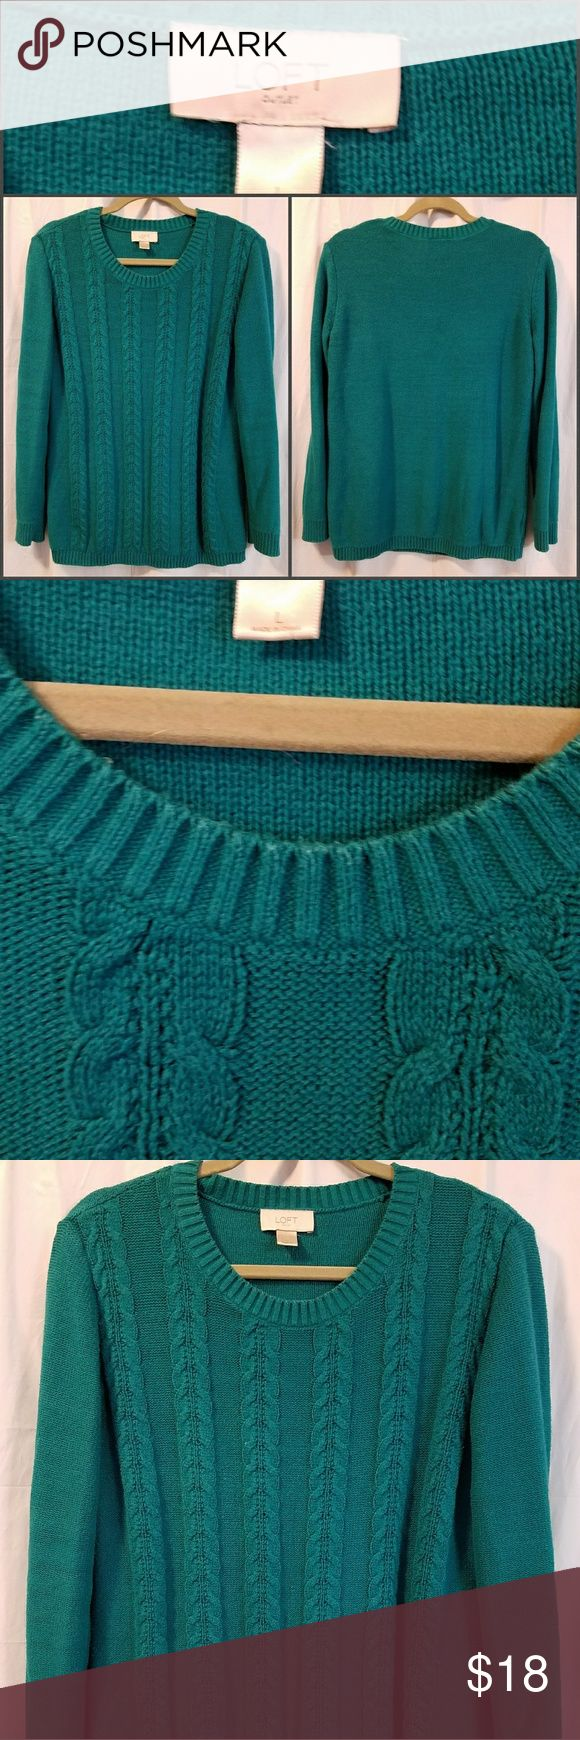 Ann Taylor Loft outlet turquoise sweater Pretty turquoise/ teal colored sweater in great condition. Cotton and acrylic. LOFT Sweaters Crew & Scoop Necks